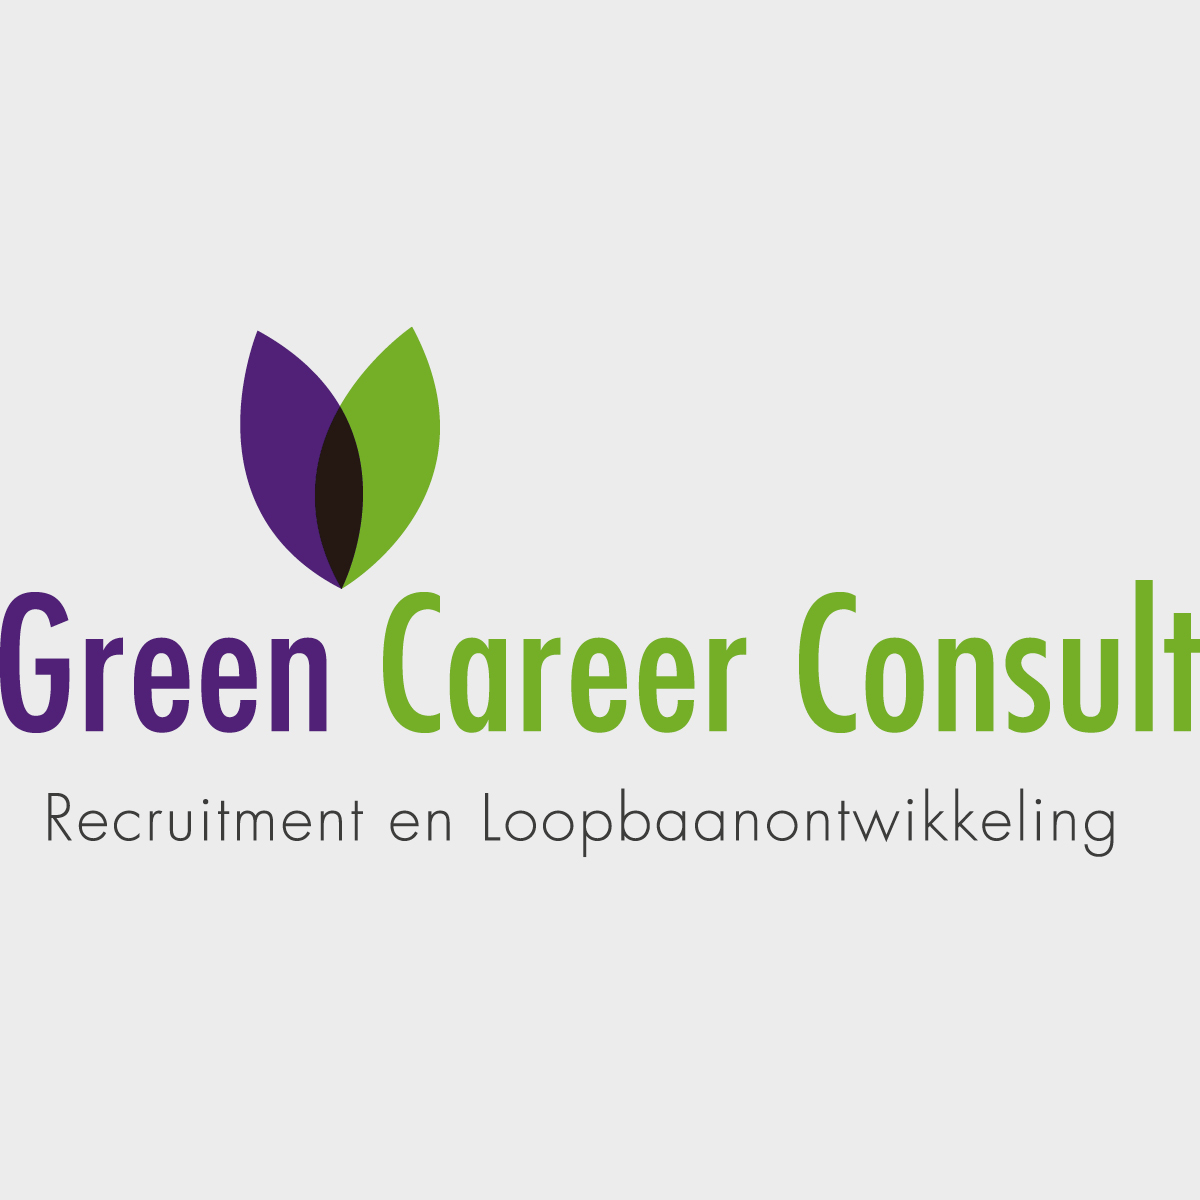 Communicatiebureau Puntkomma Nijmegen - corporate identity Green Career Consult